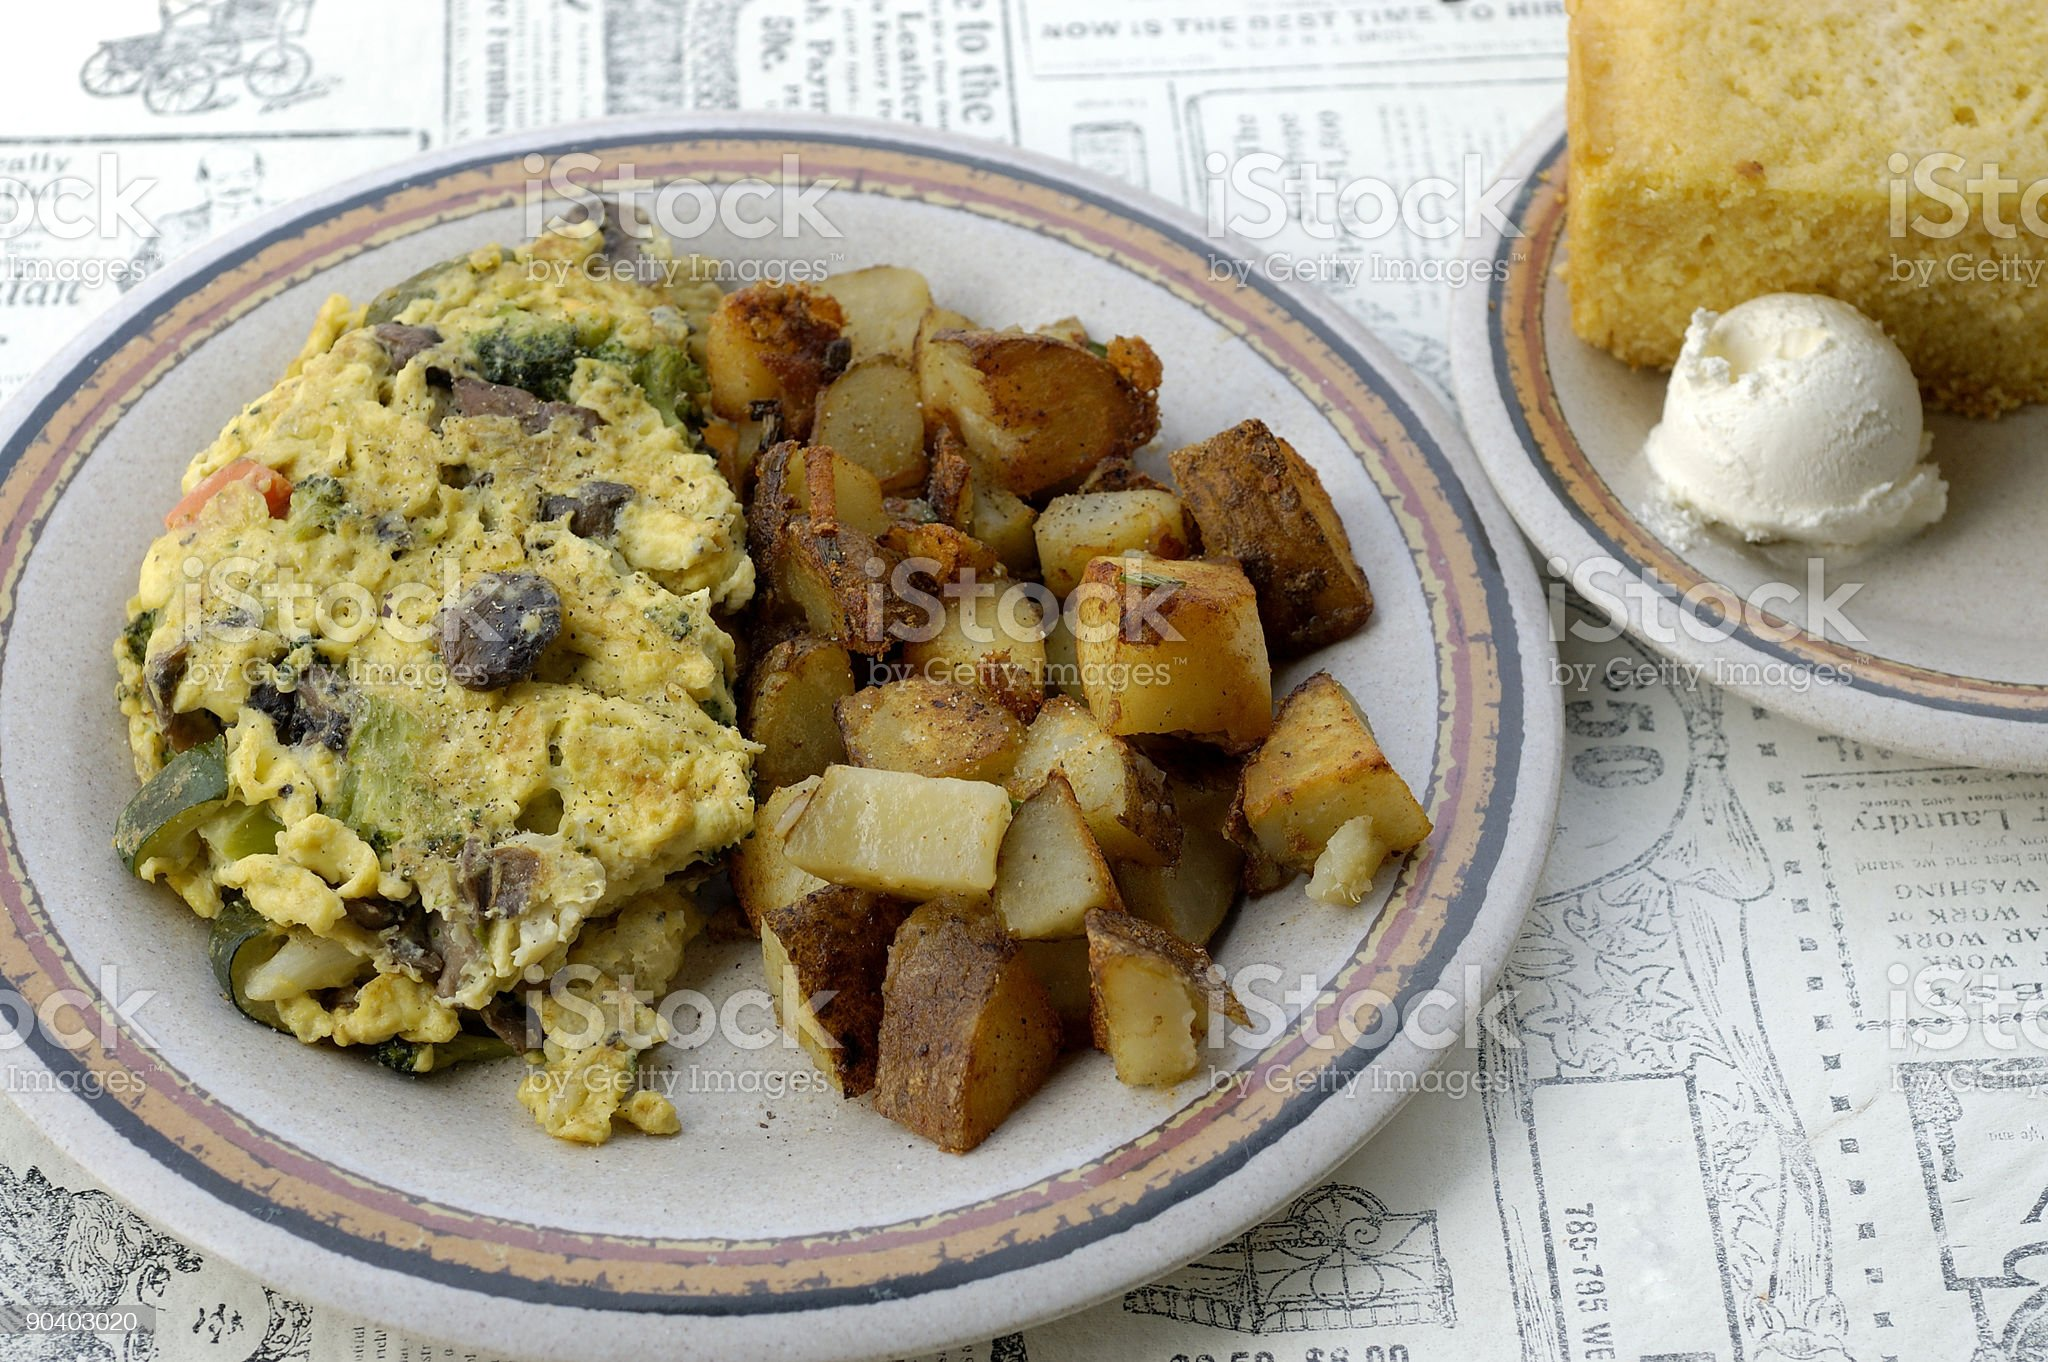 Hearty Southern Breakfast royalty-free stock photo